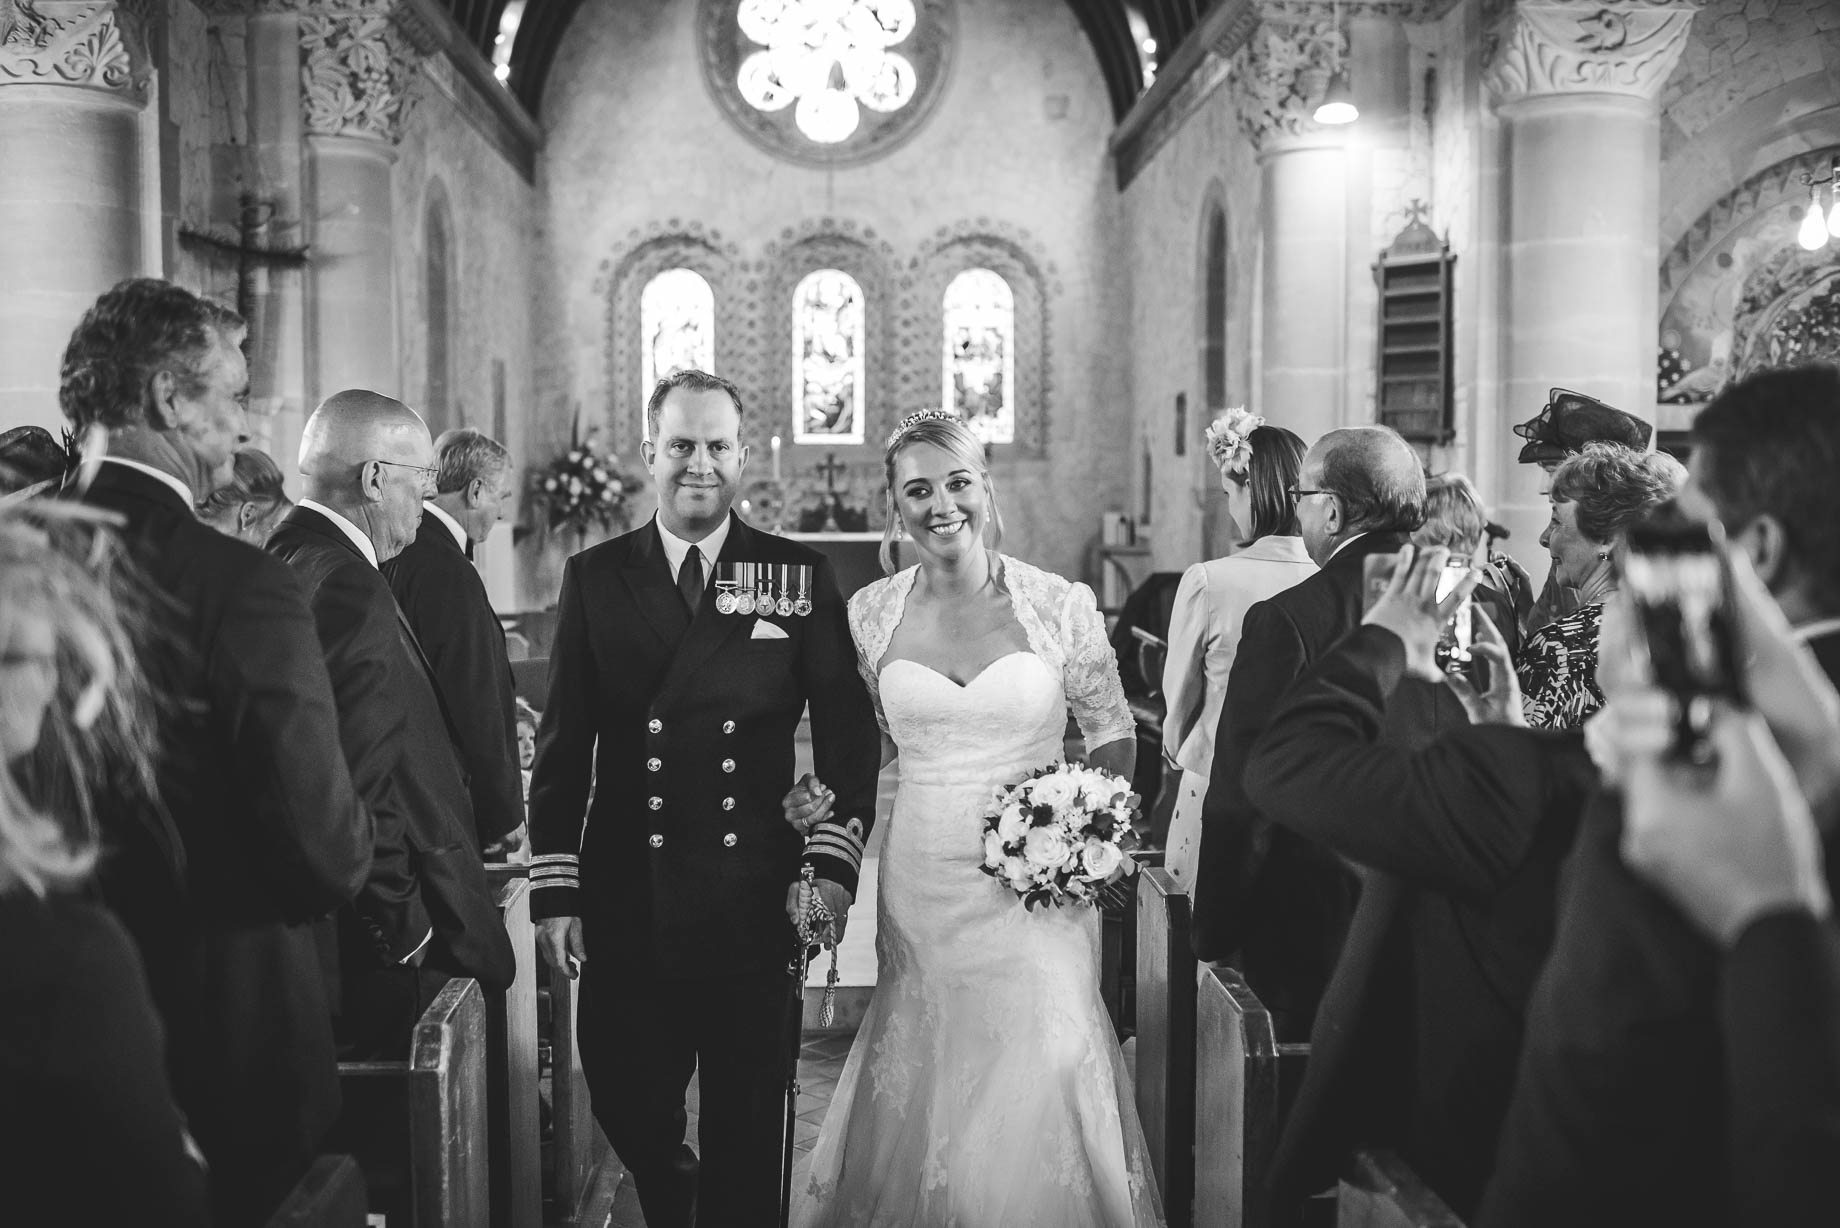 Hampshire wedding photography - Emily and Rob - Guy Collier Photography (65 of 192)